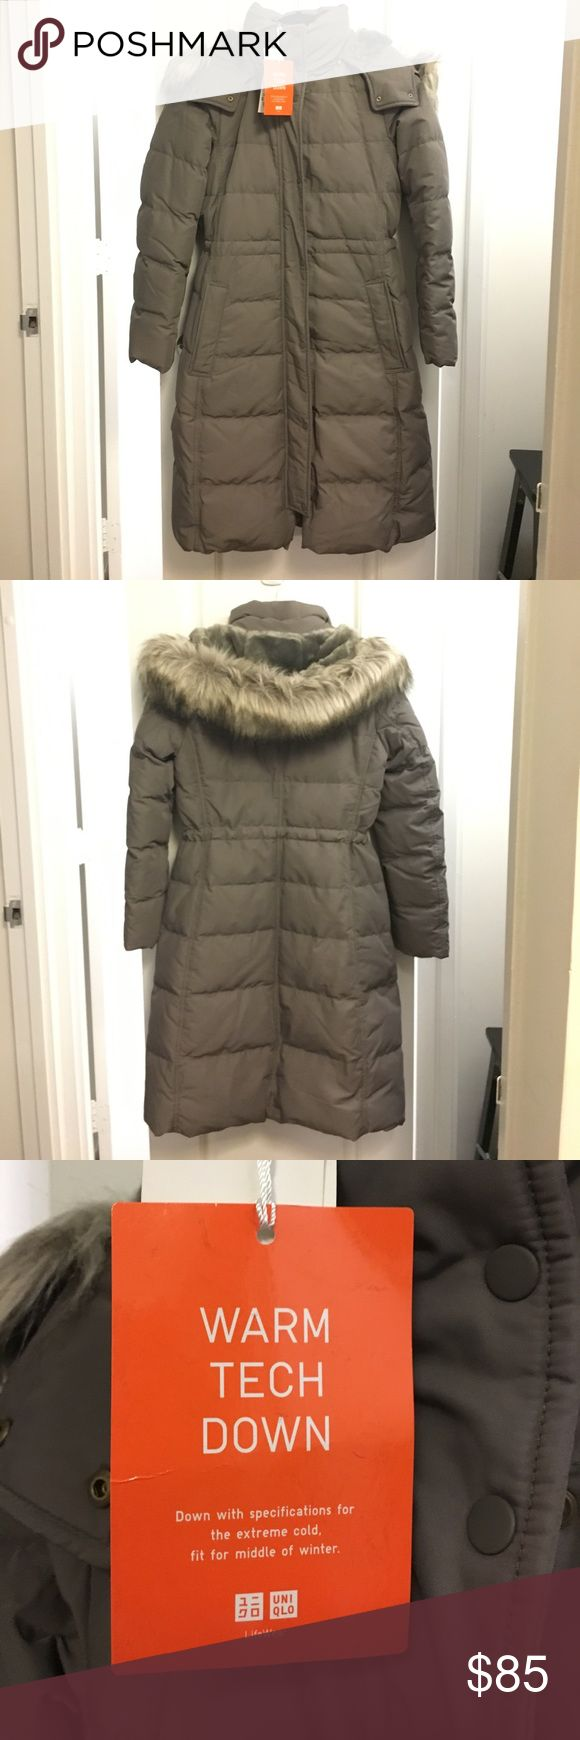 Uniqlo Warm Tech Down Coat Uniqlo down winter coat with heat tech technology. Removable lined hood with faux fur trim. Brand new, never worn, tags on. Uniqlo Jackets & Coats Puffers